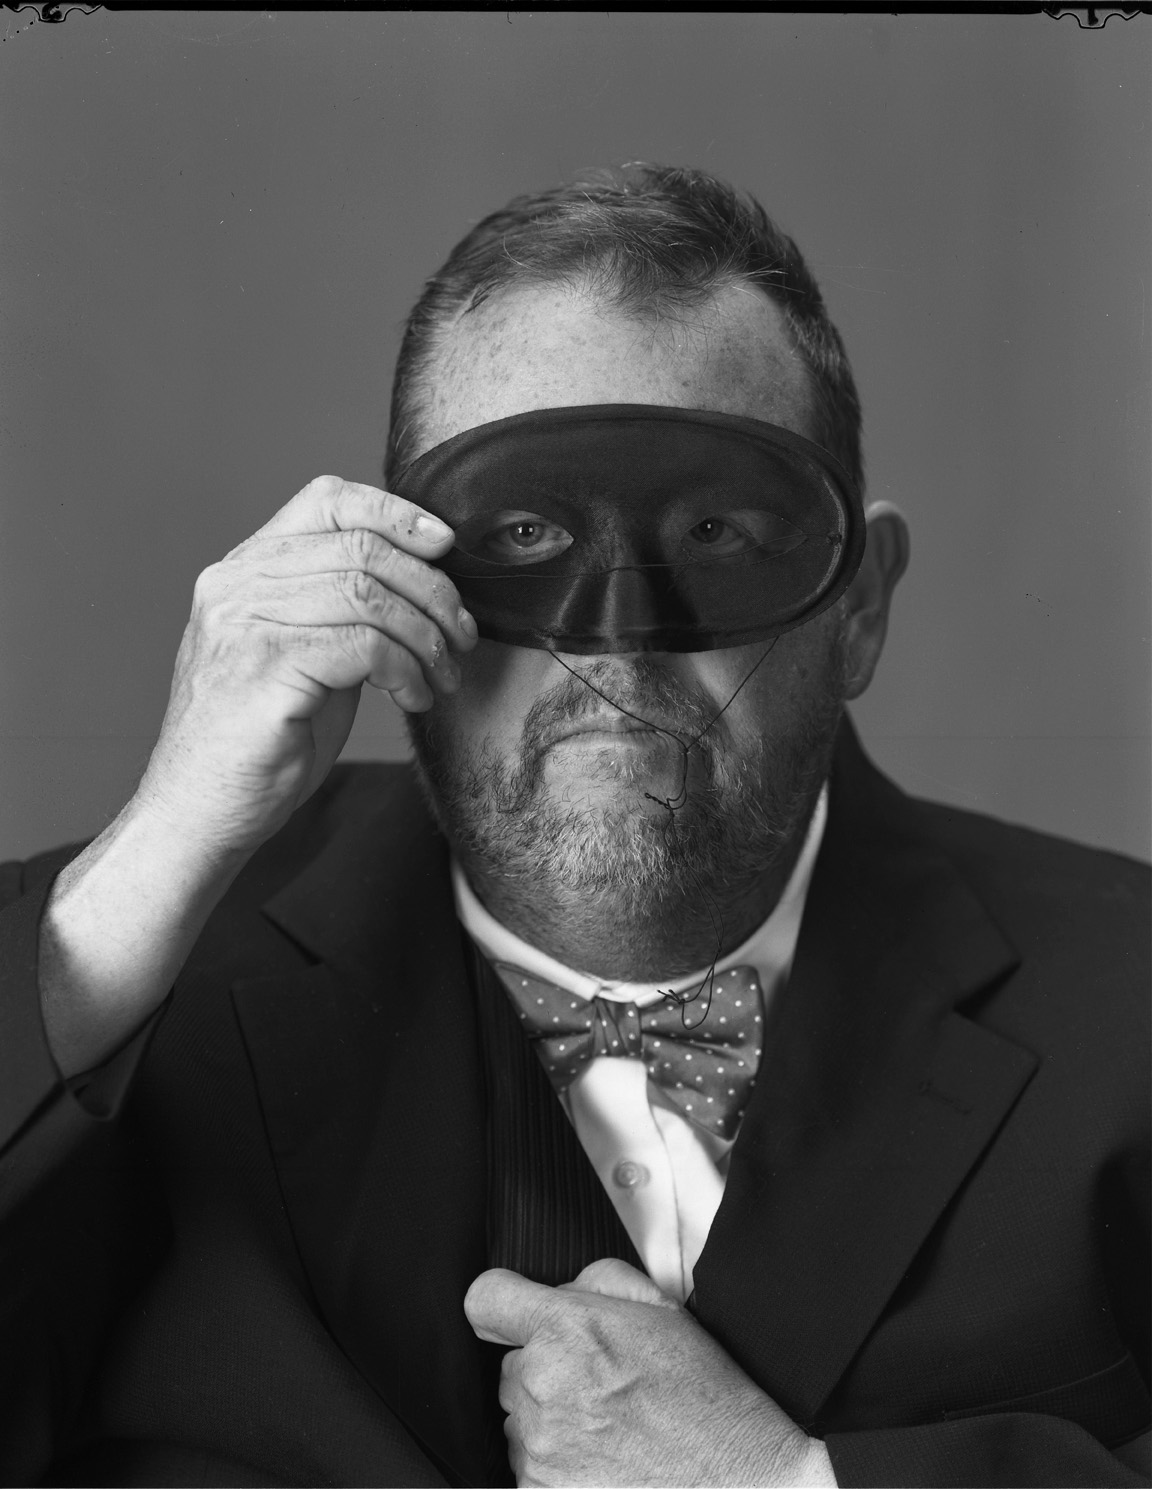 Self-portait With Mask